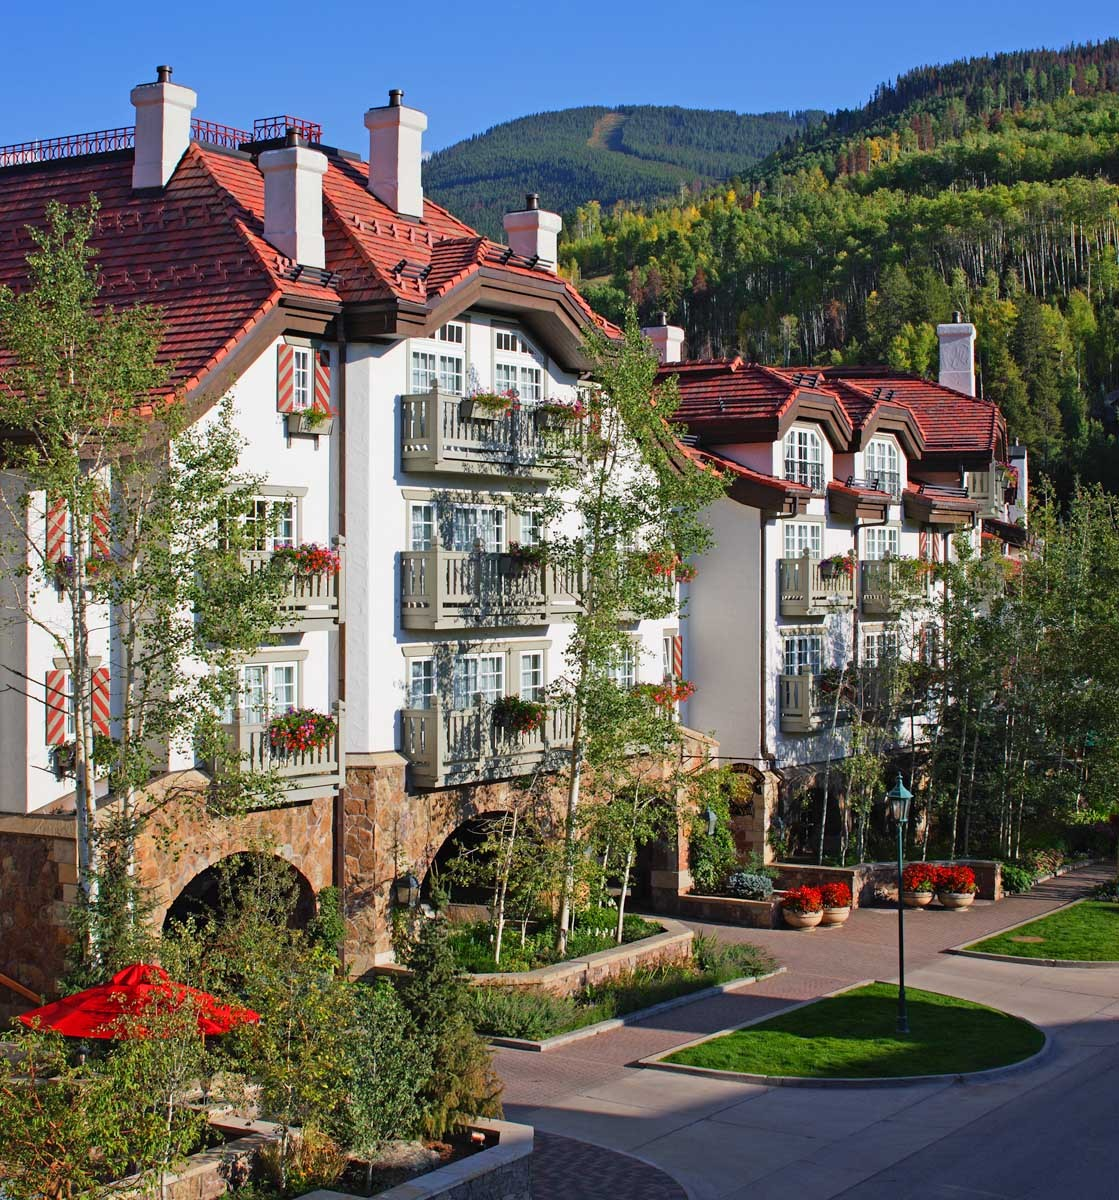 Sonnenalp Resort, Vail, Colorado